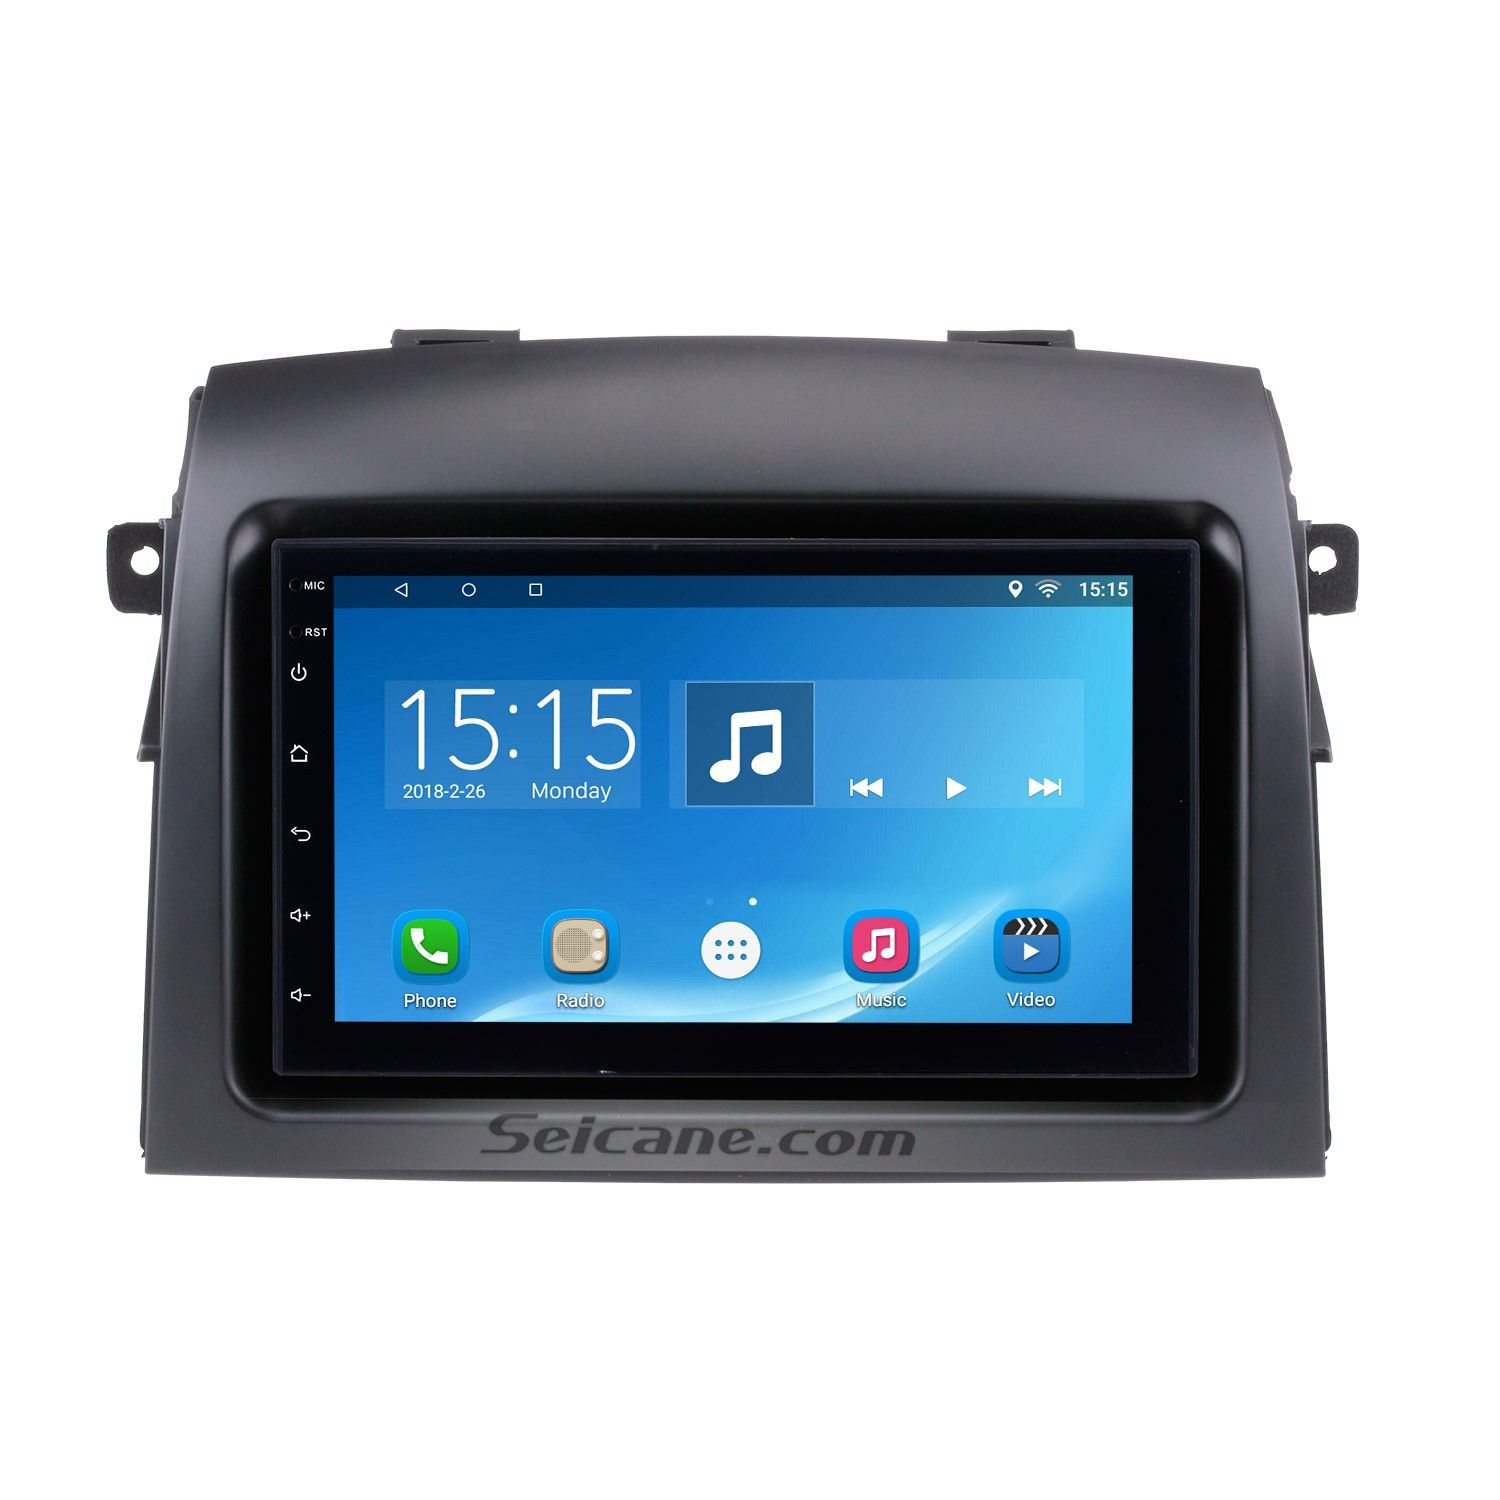 Seicane Android 6.0 7 Inch HD Touch Screen 2 Din Radio